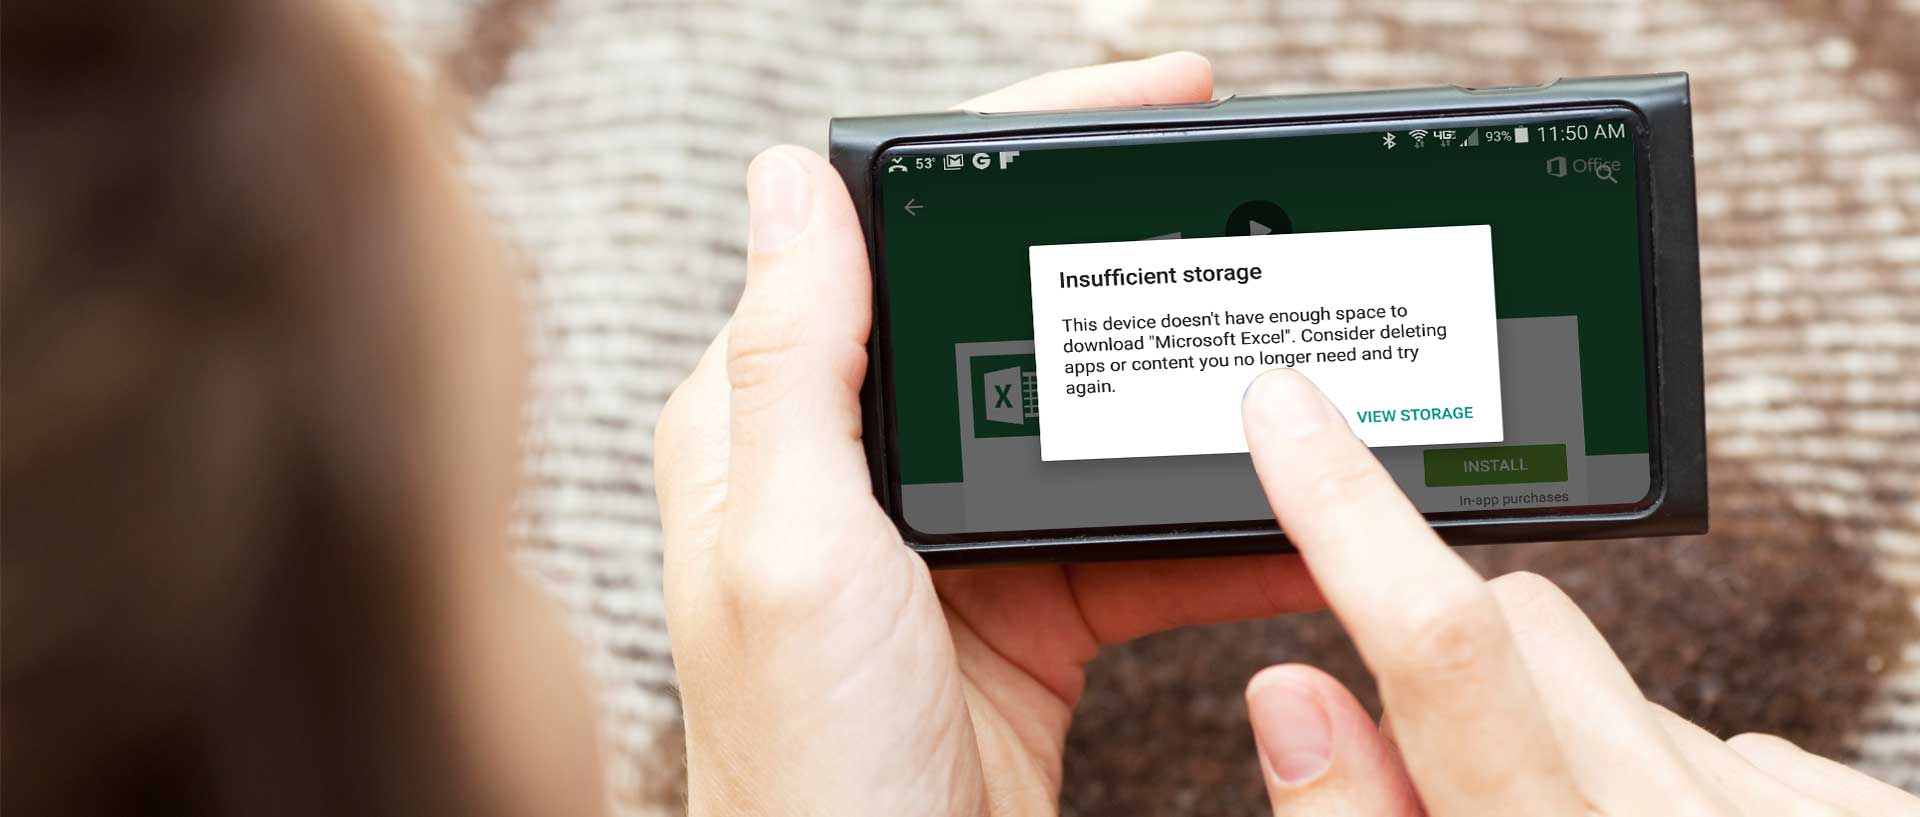 Insufficient Storage Available Problem Android - Consumer Reports